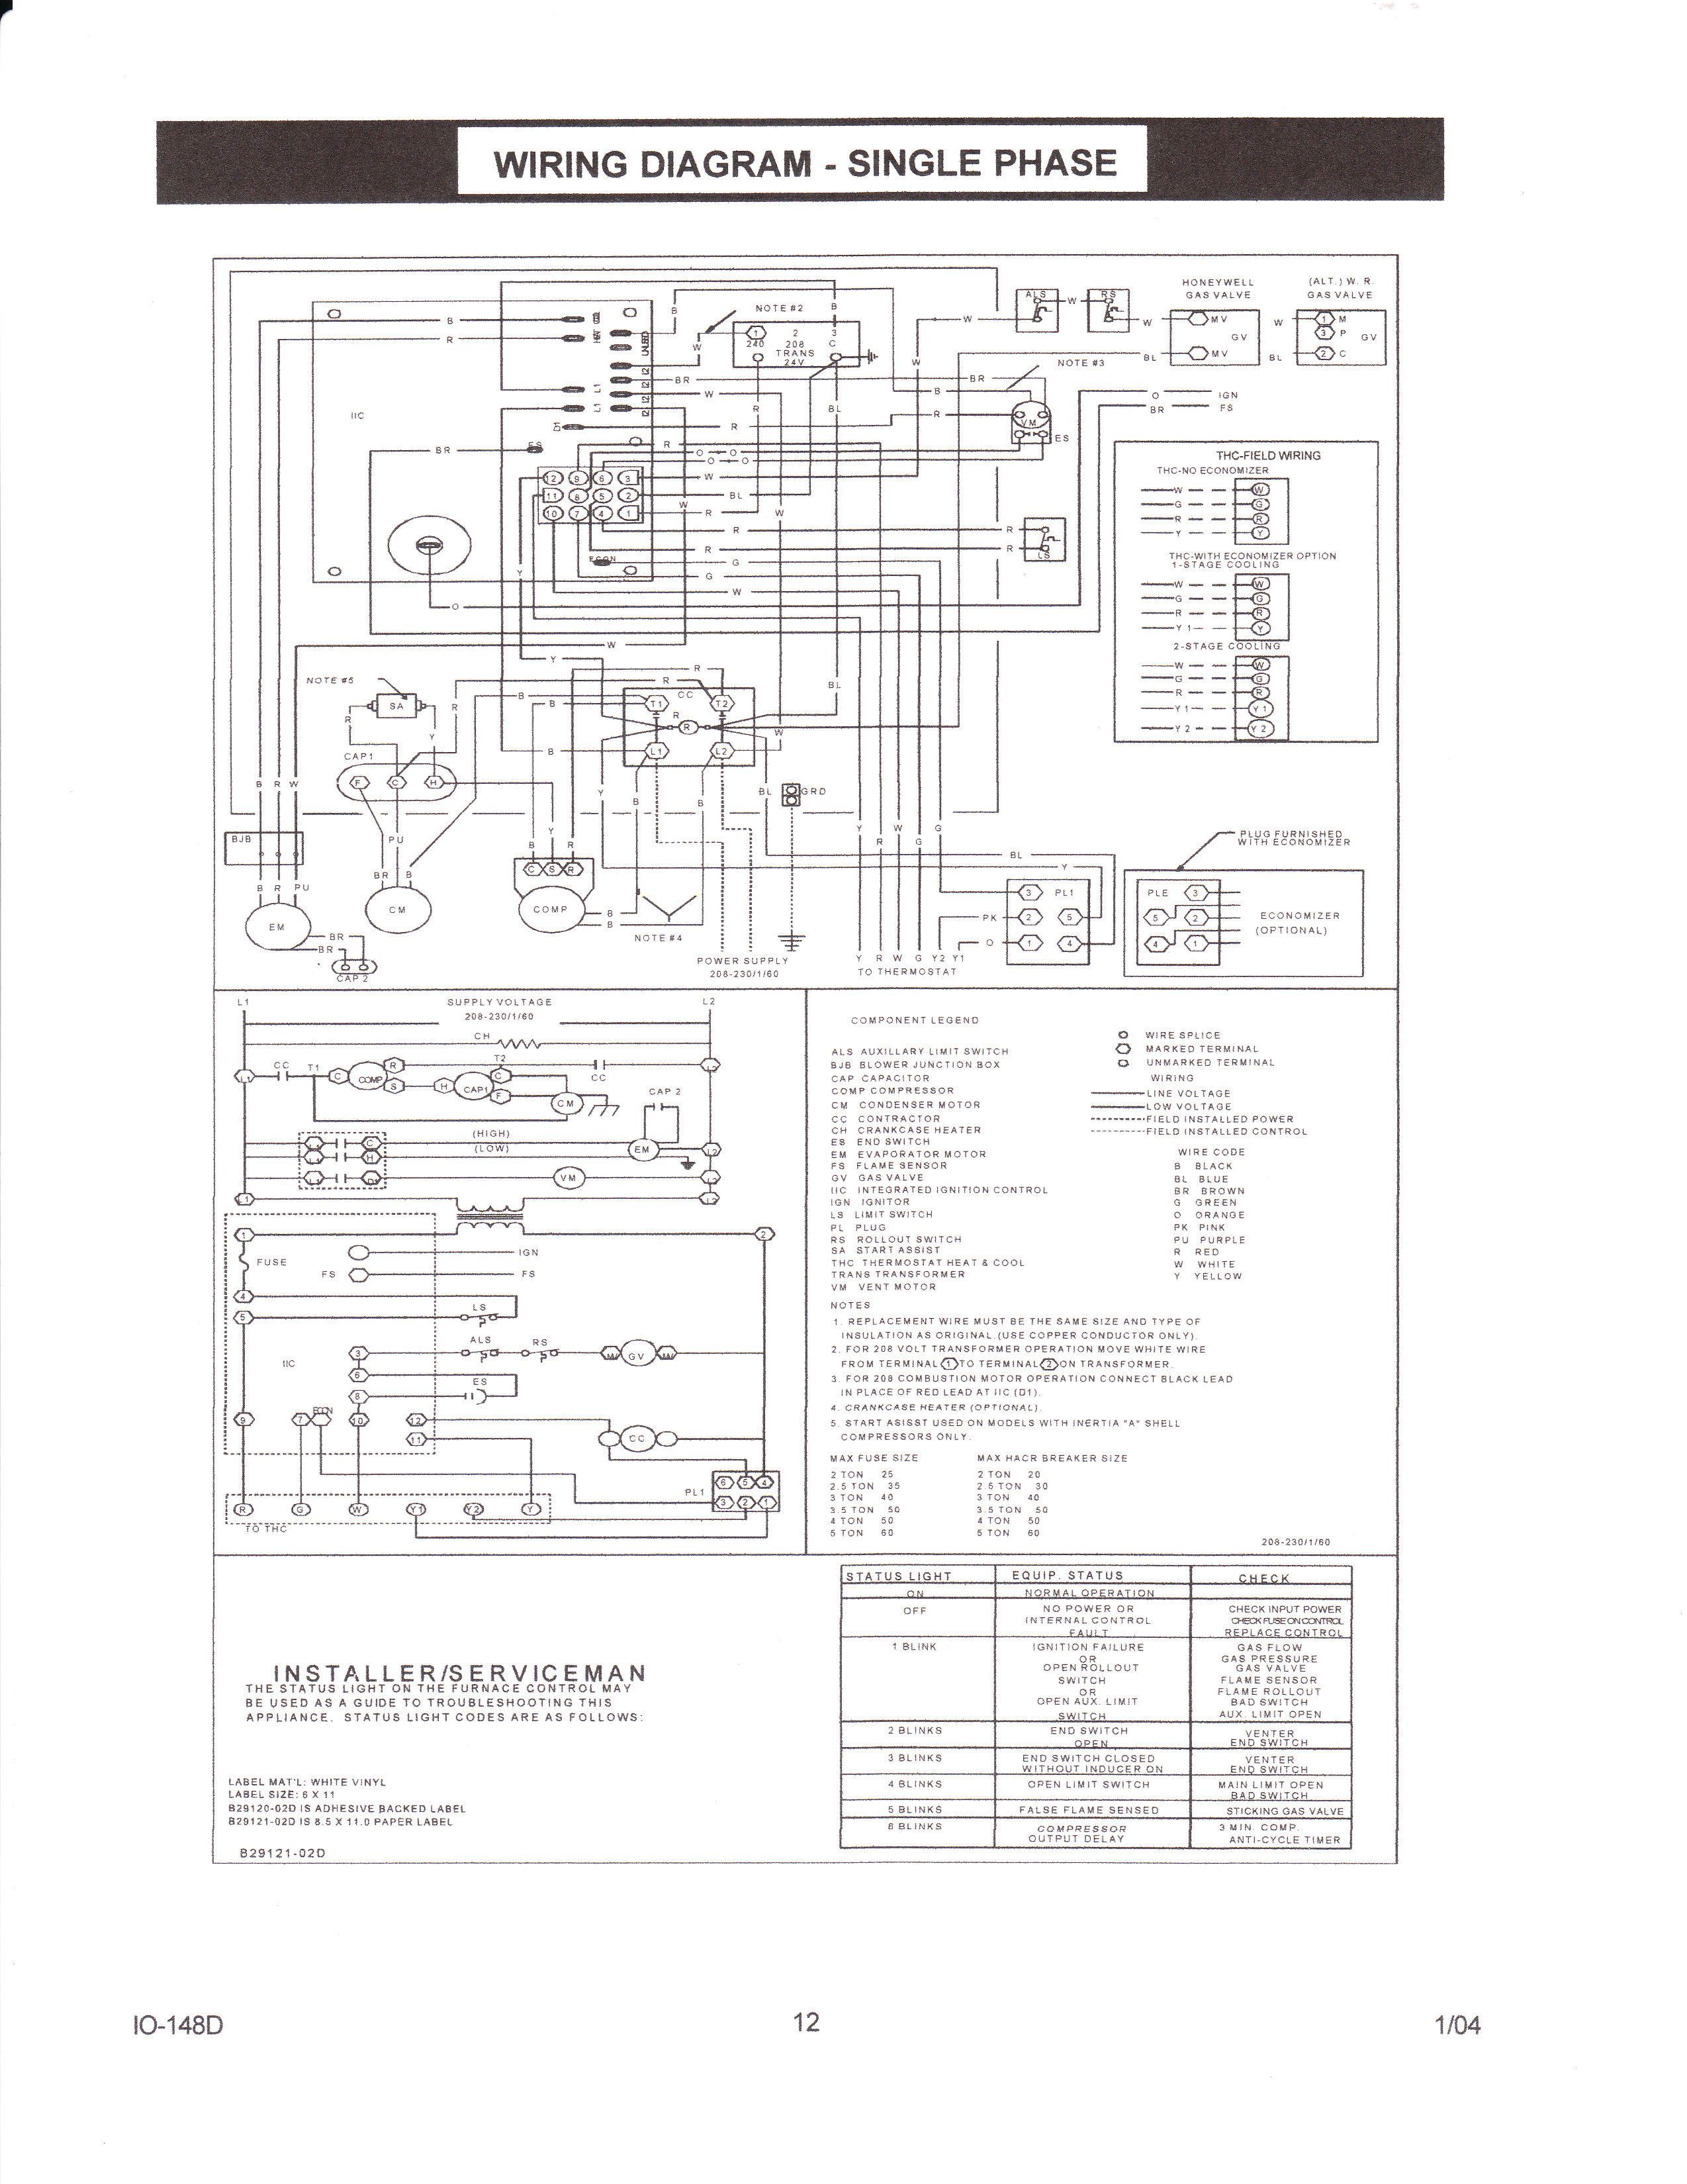 Heil 5000 Blower Motor Board Wiring Diagram